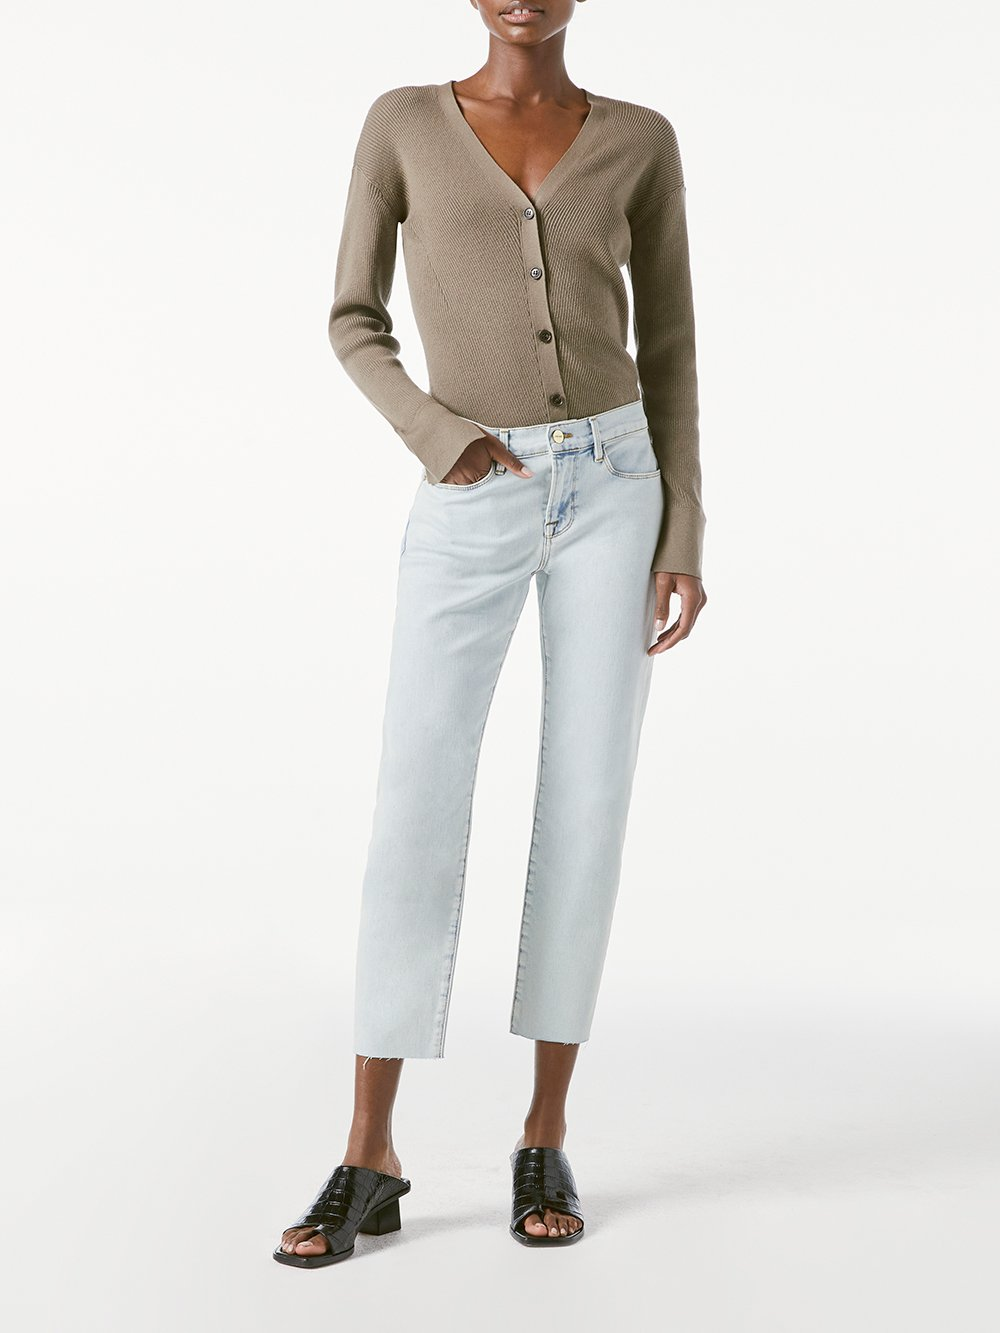 Le Garcon Crop Raw Edge Skinny Jean - Divisedero-FRAME-Over the Rainbow